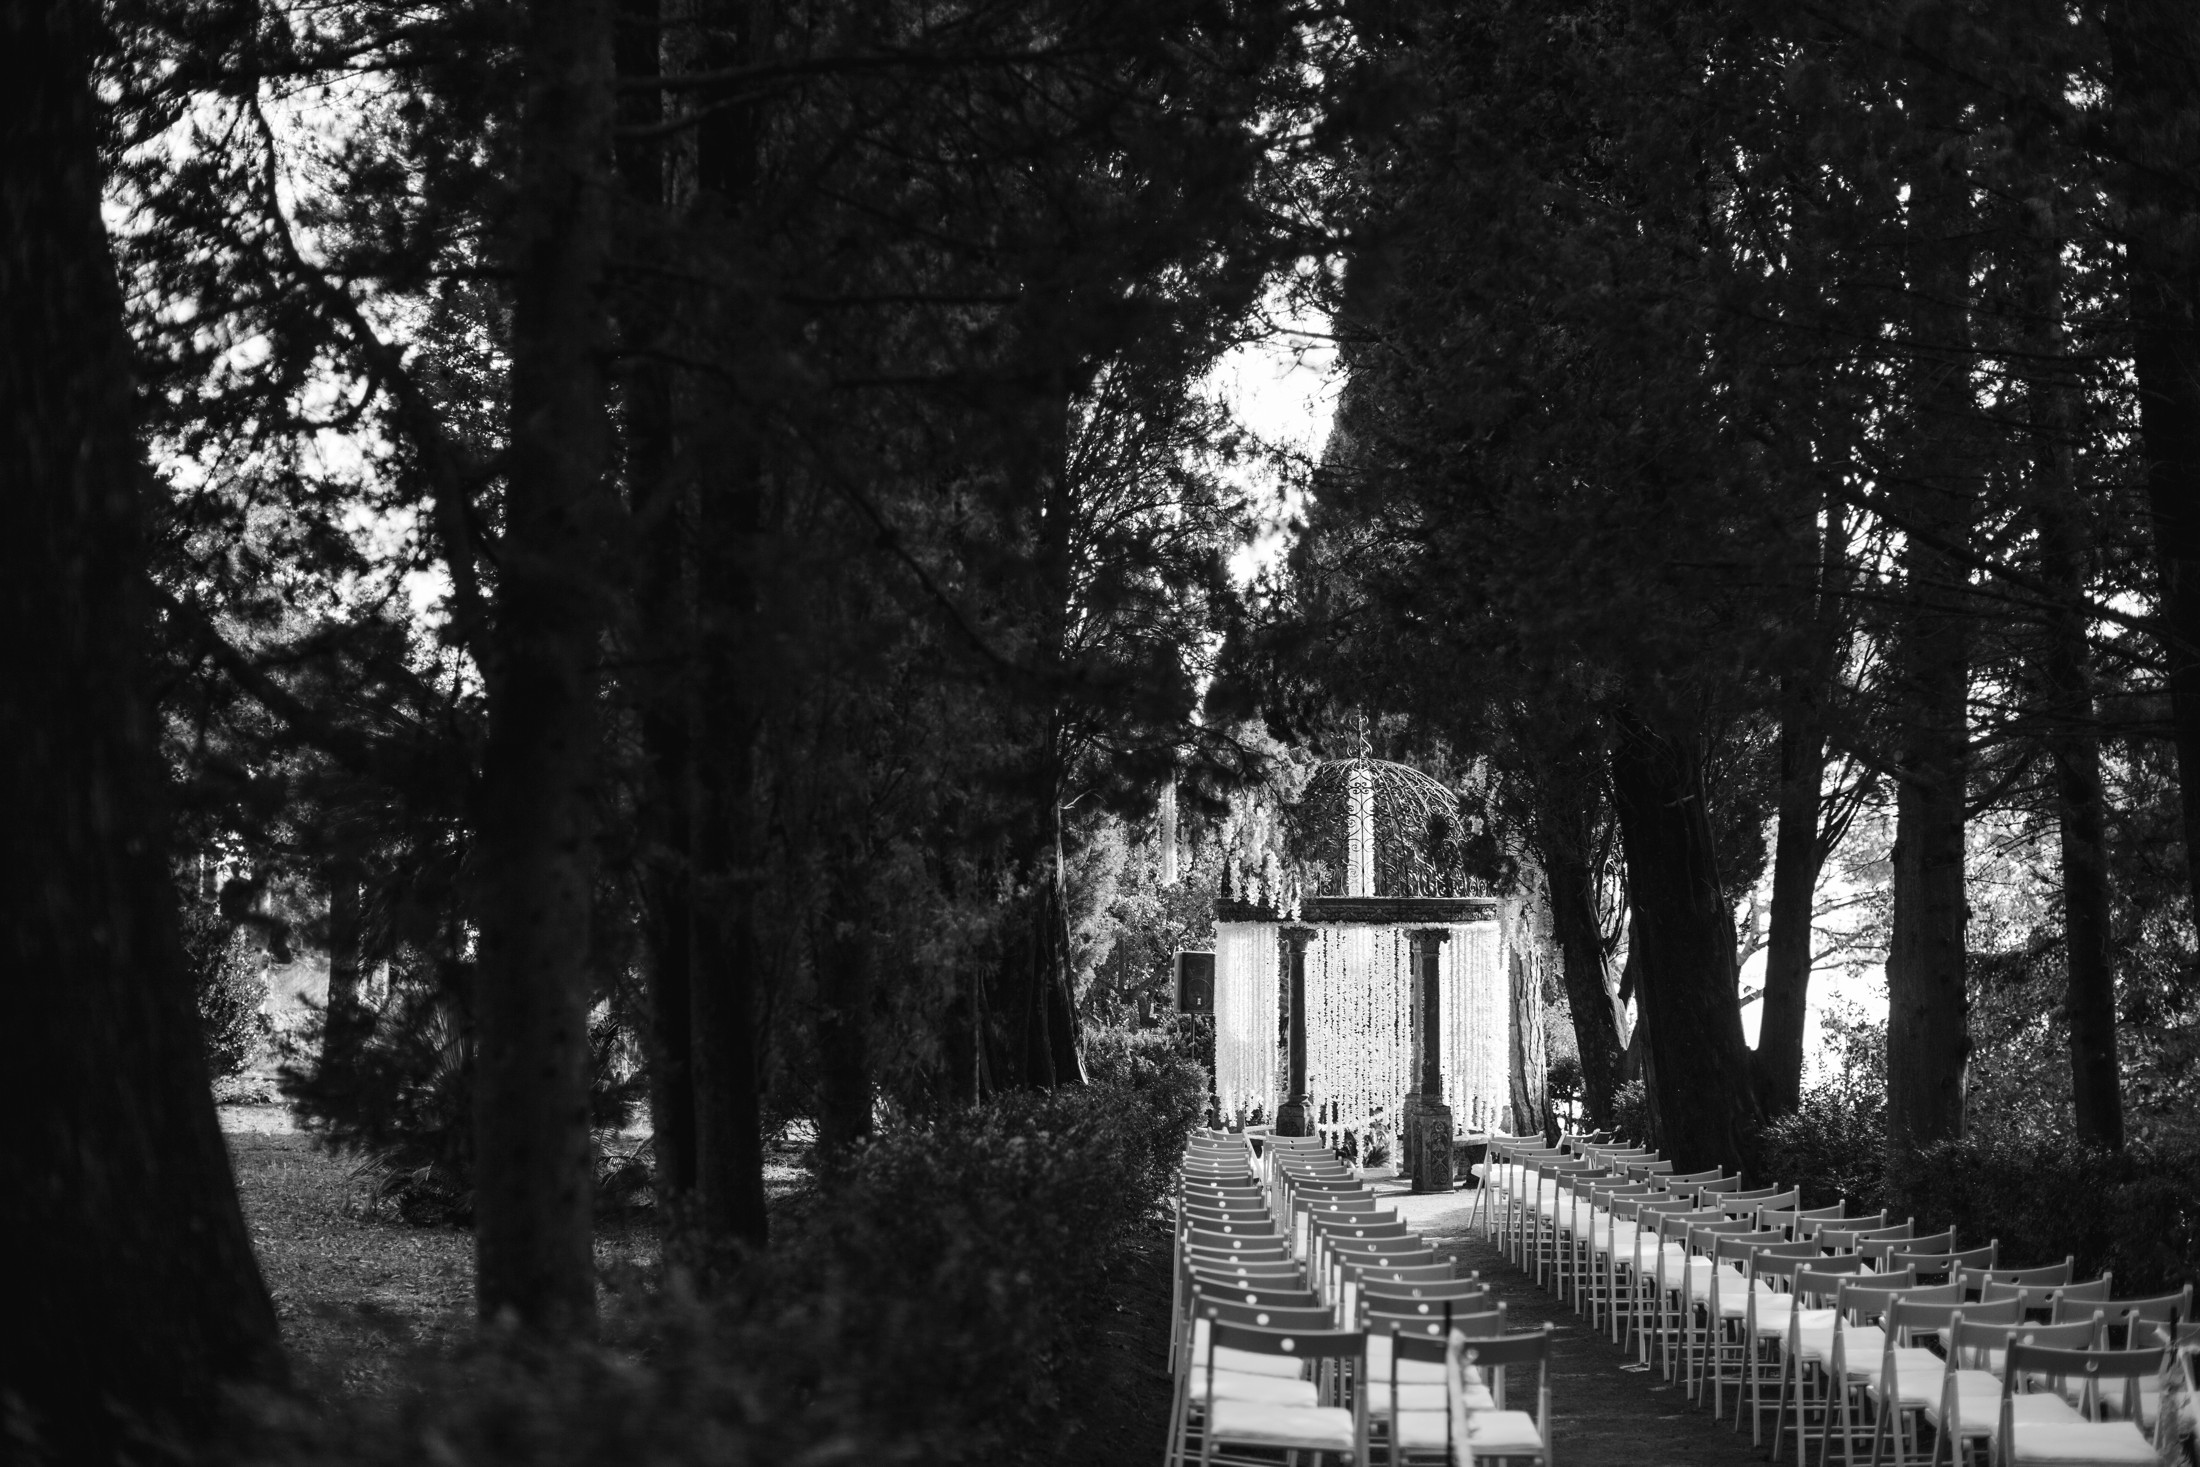 luxury wedding wedding ceremony setting at villa cimbrone in black and white